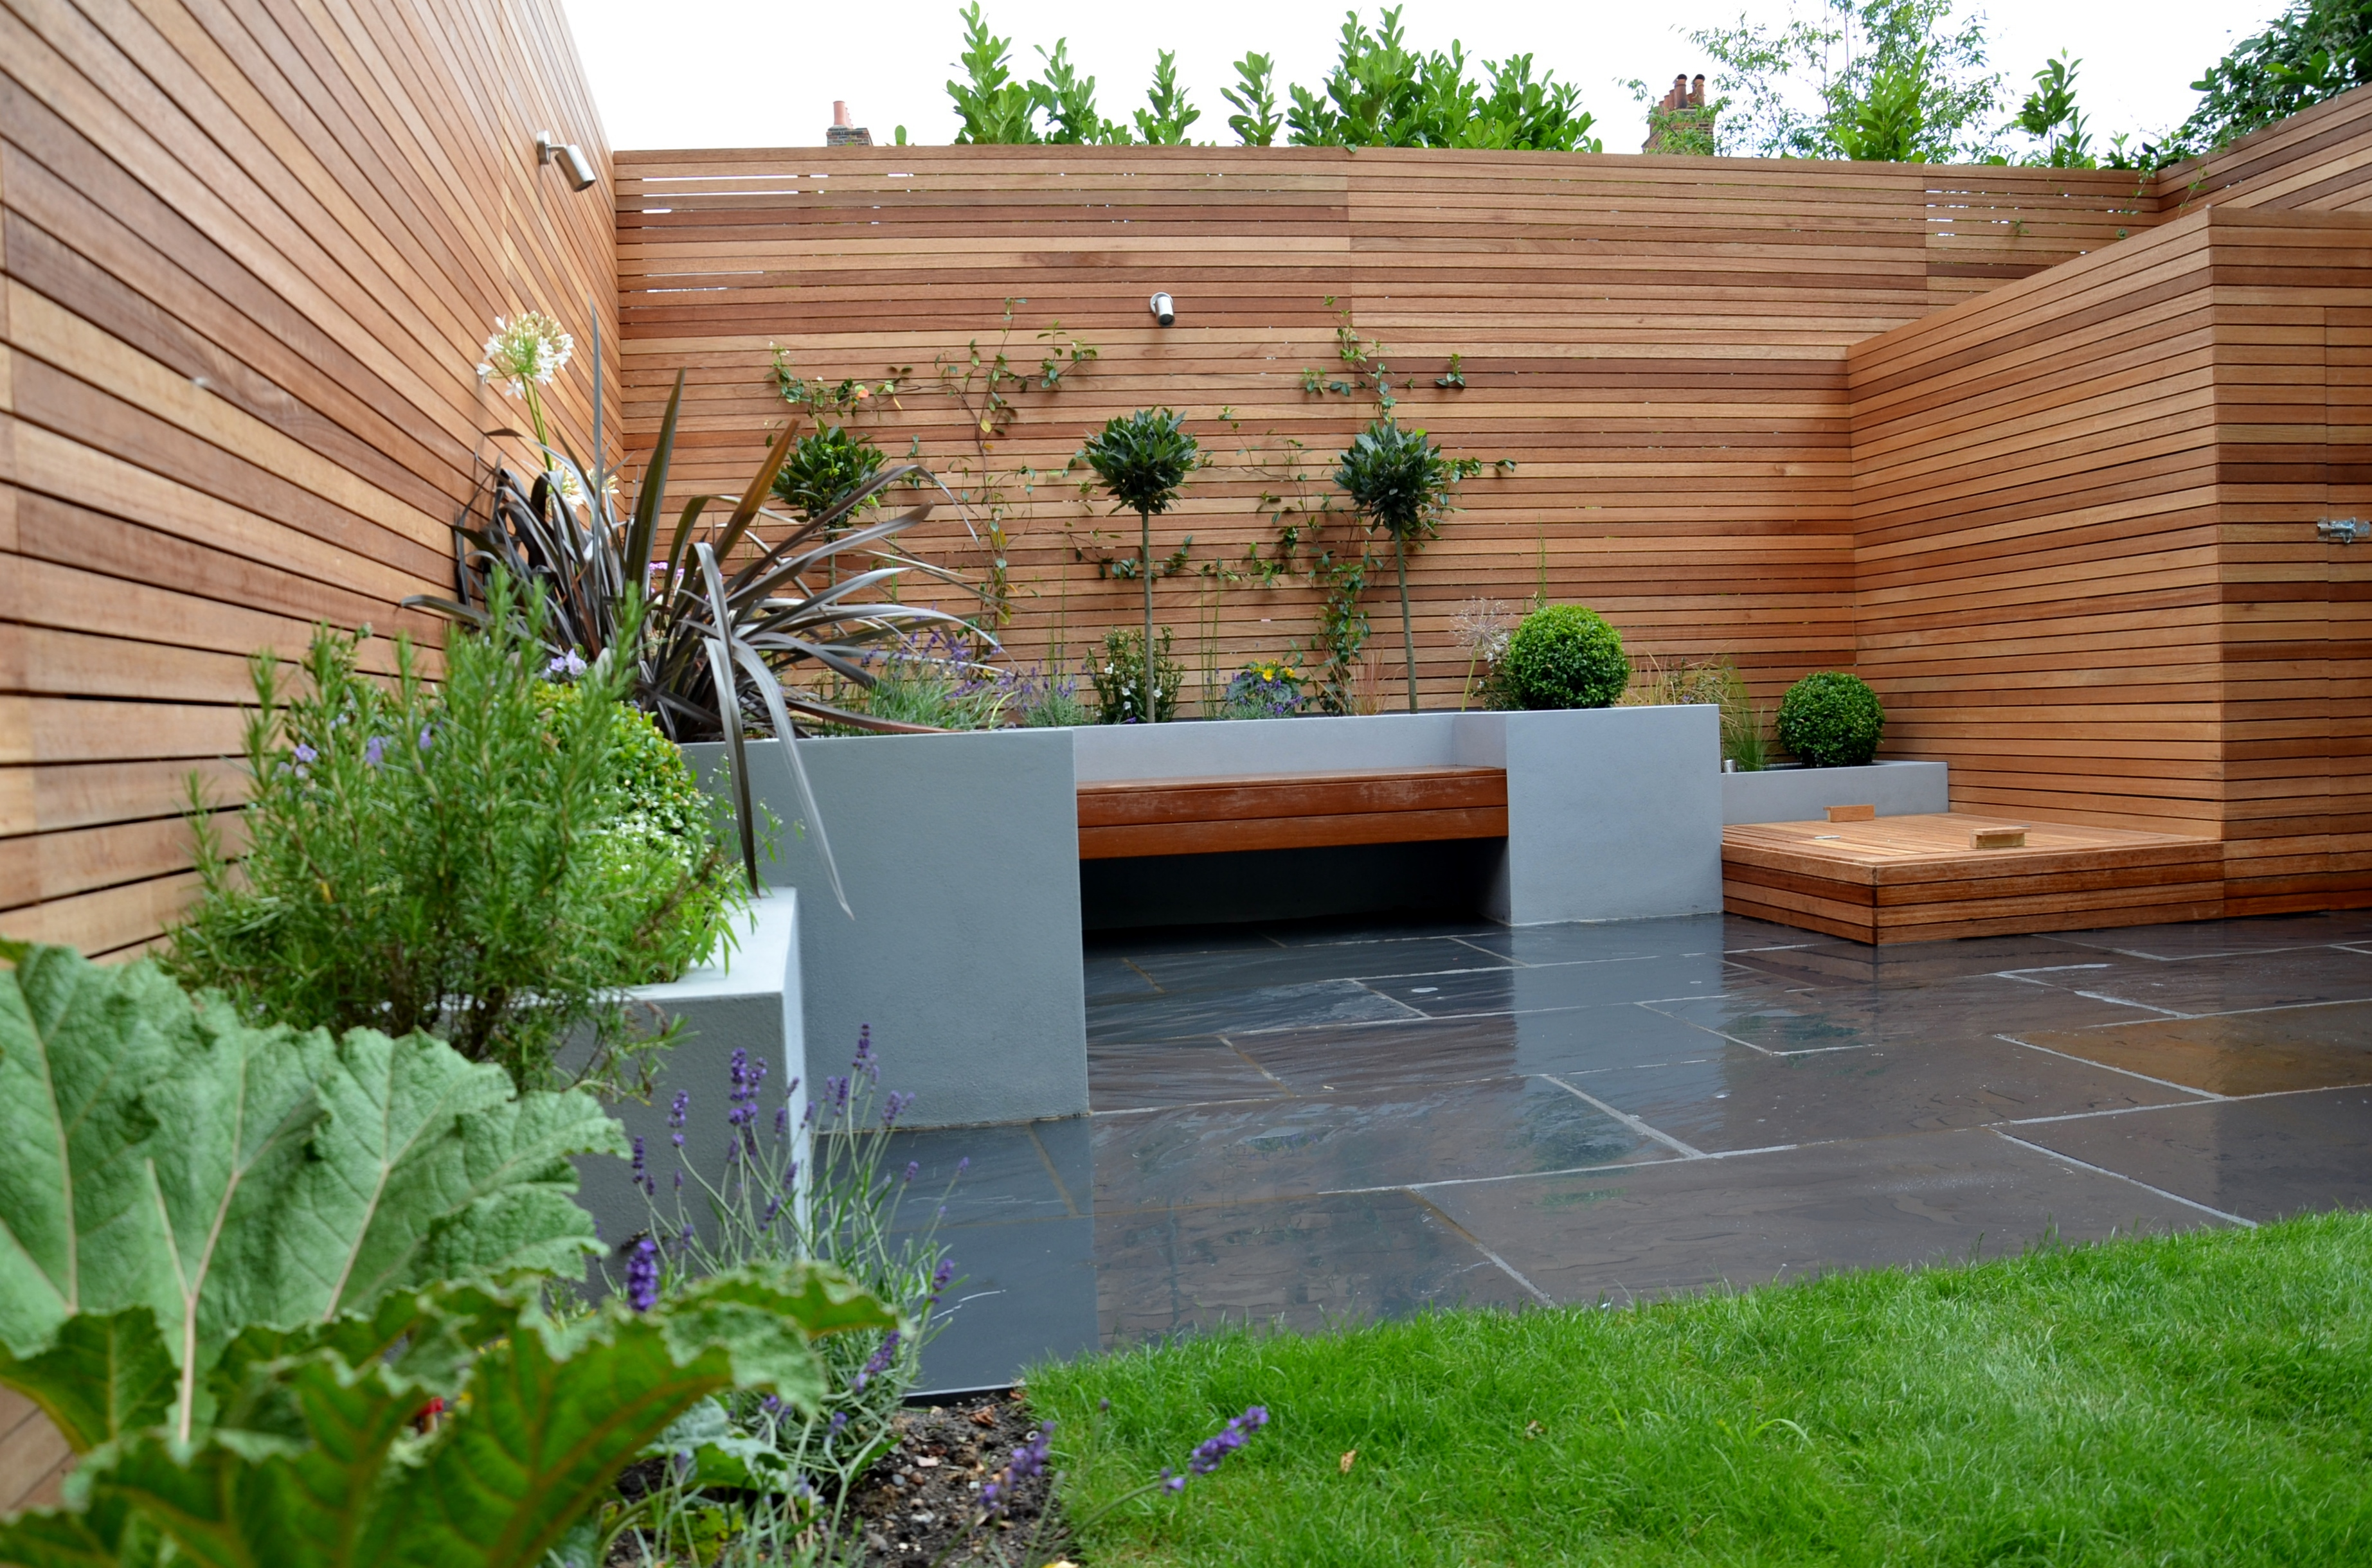 London Garden Blog London Garden Blog Gardens From